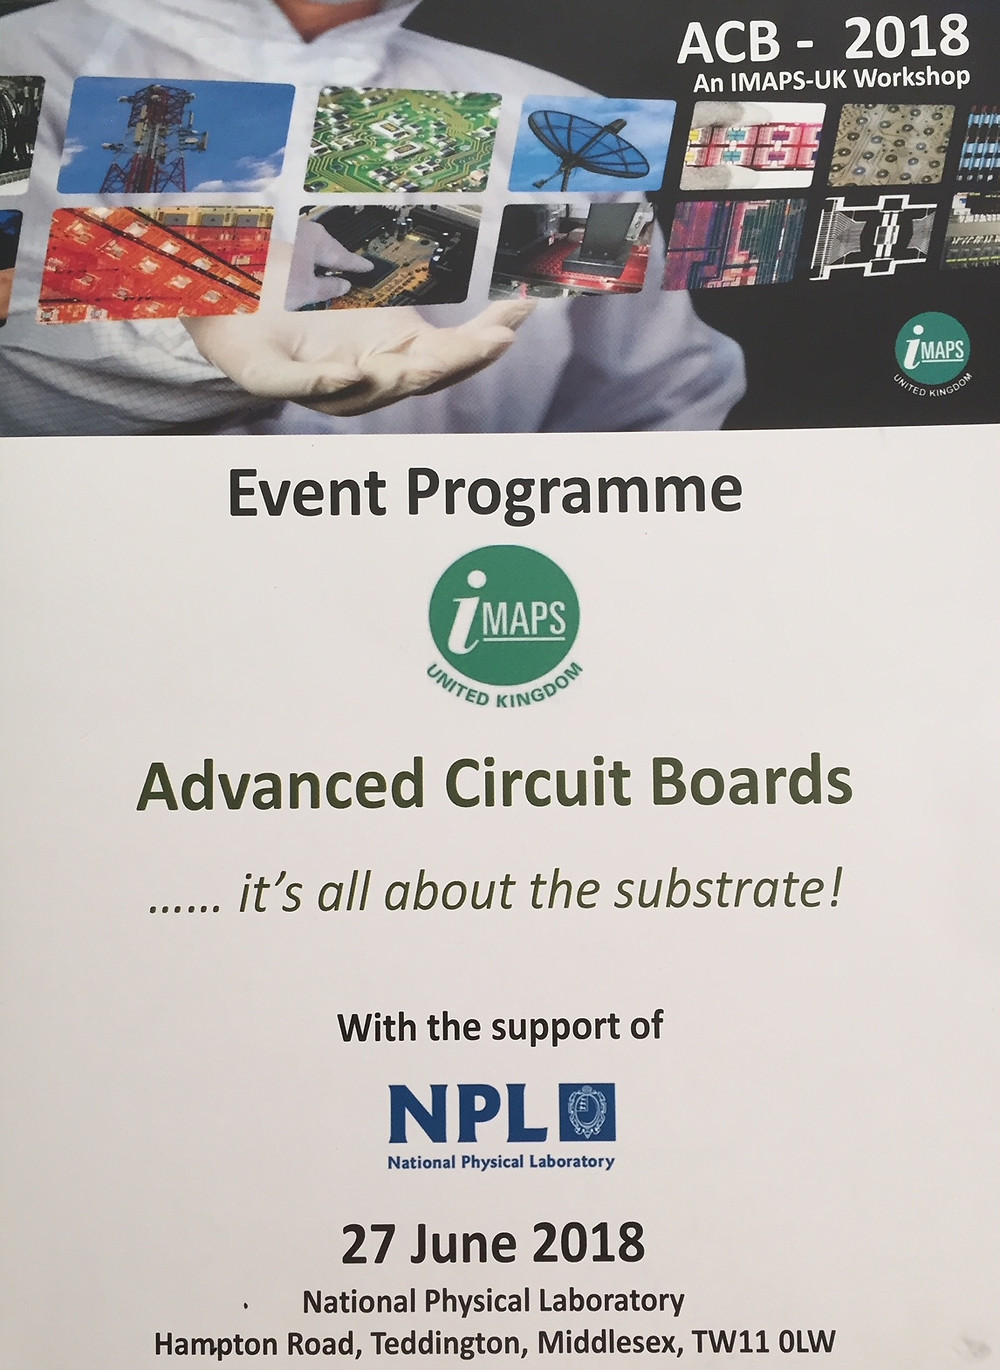 SYMETA at iMaps & ICT Advanced Circuit Boards workshop